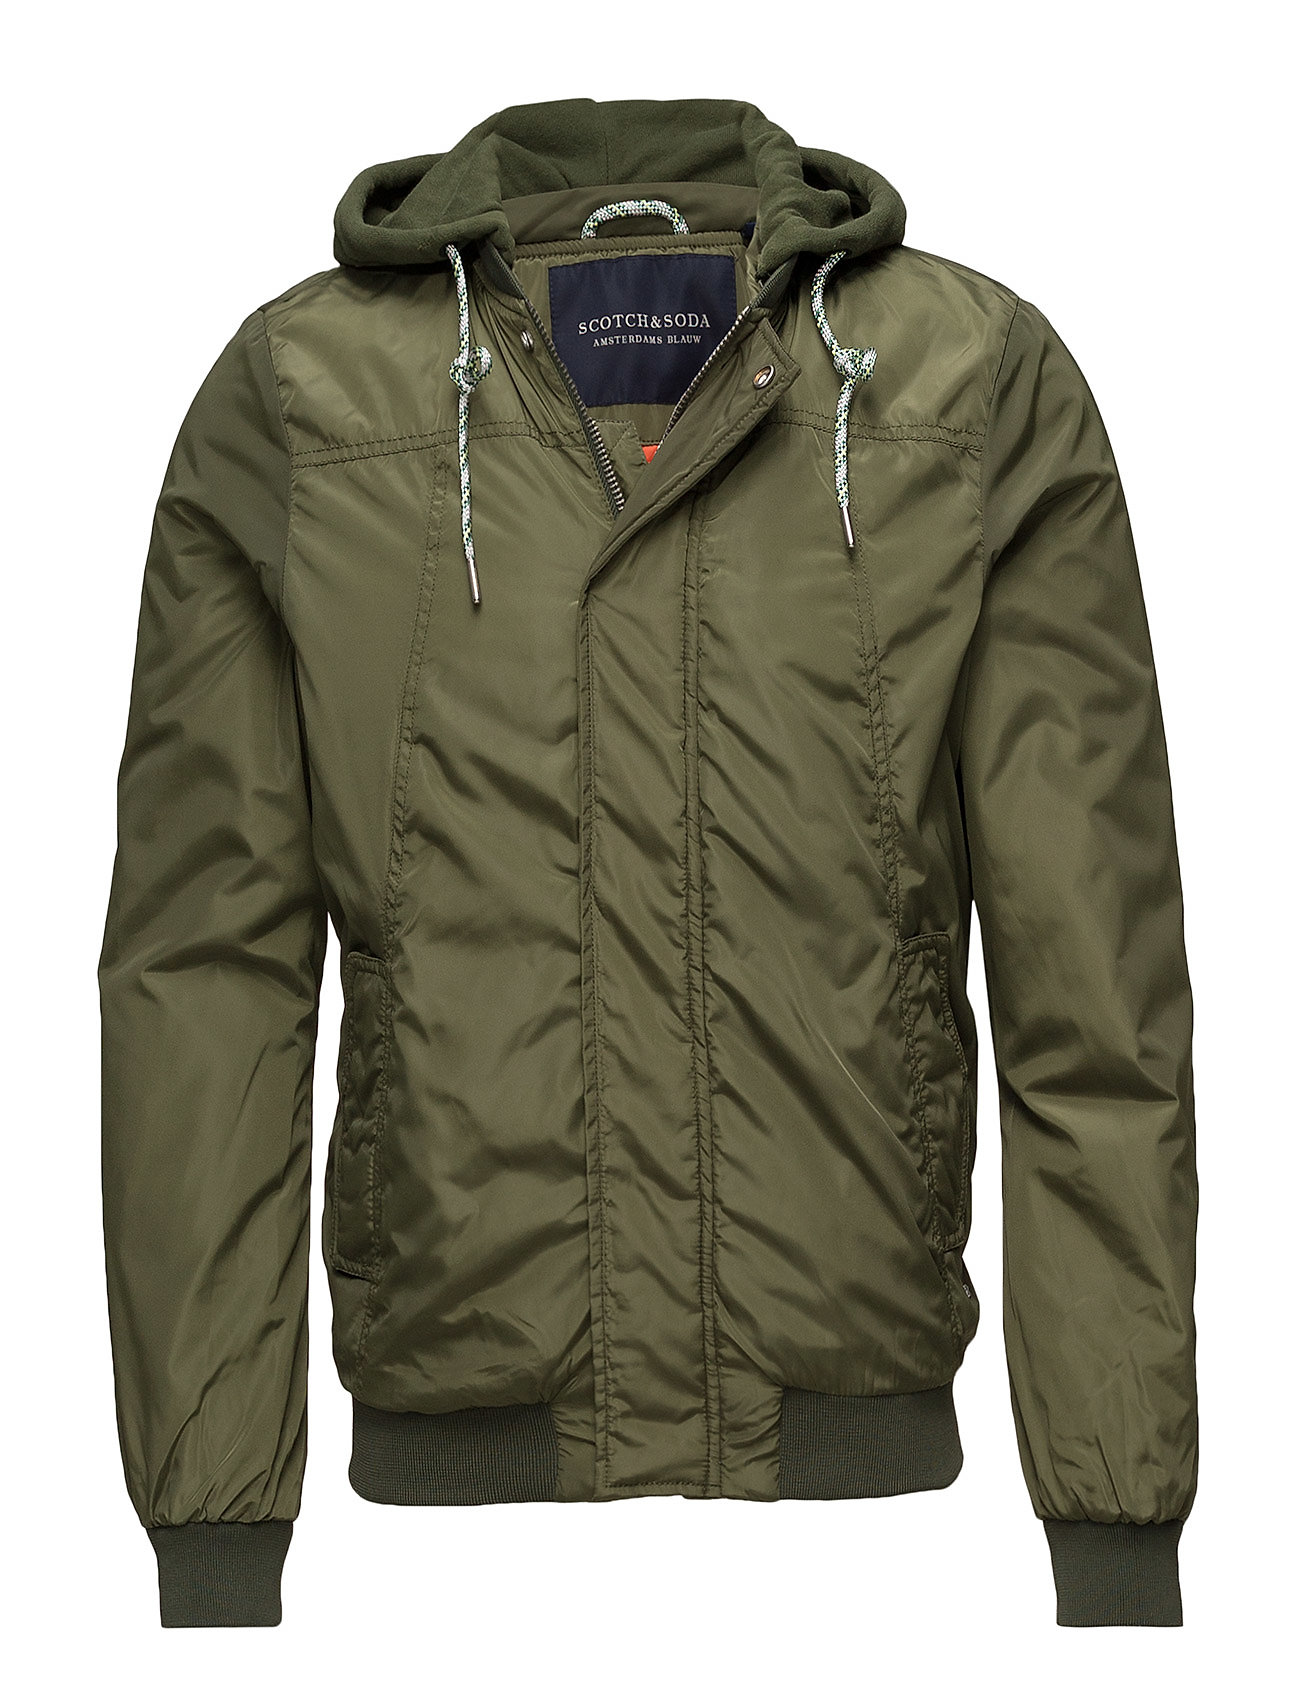 Scotch & Soda Ams Blauw worked out bomber jacket